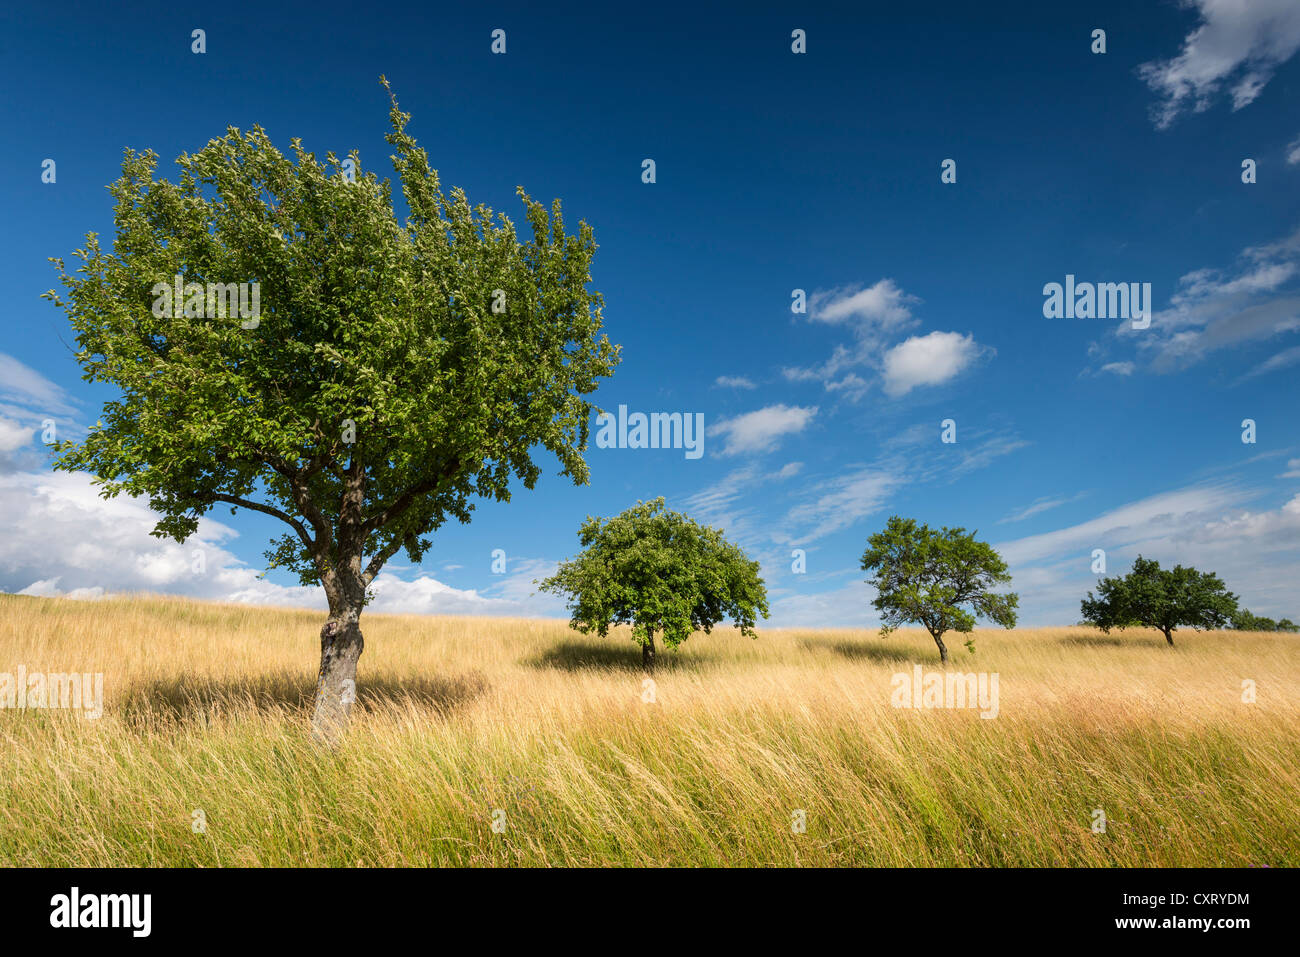 Summer, grassland with fruit trees, Hegau region, Welschingen, Baden-Wuerttemberg, Germany, Europe - Stock Image